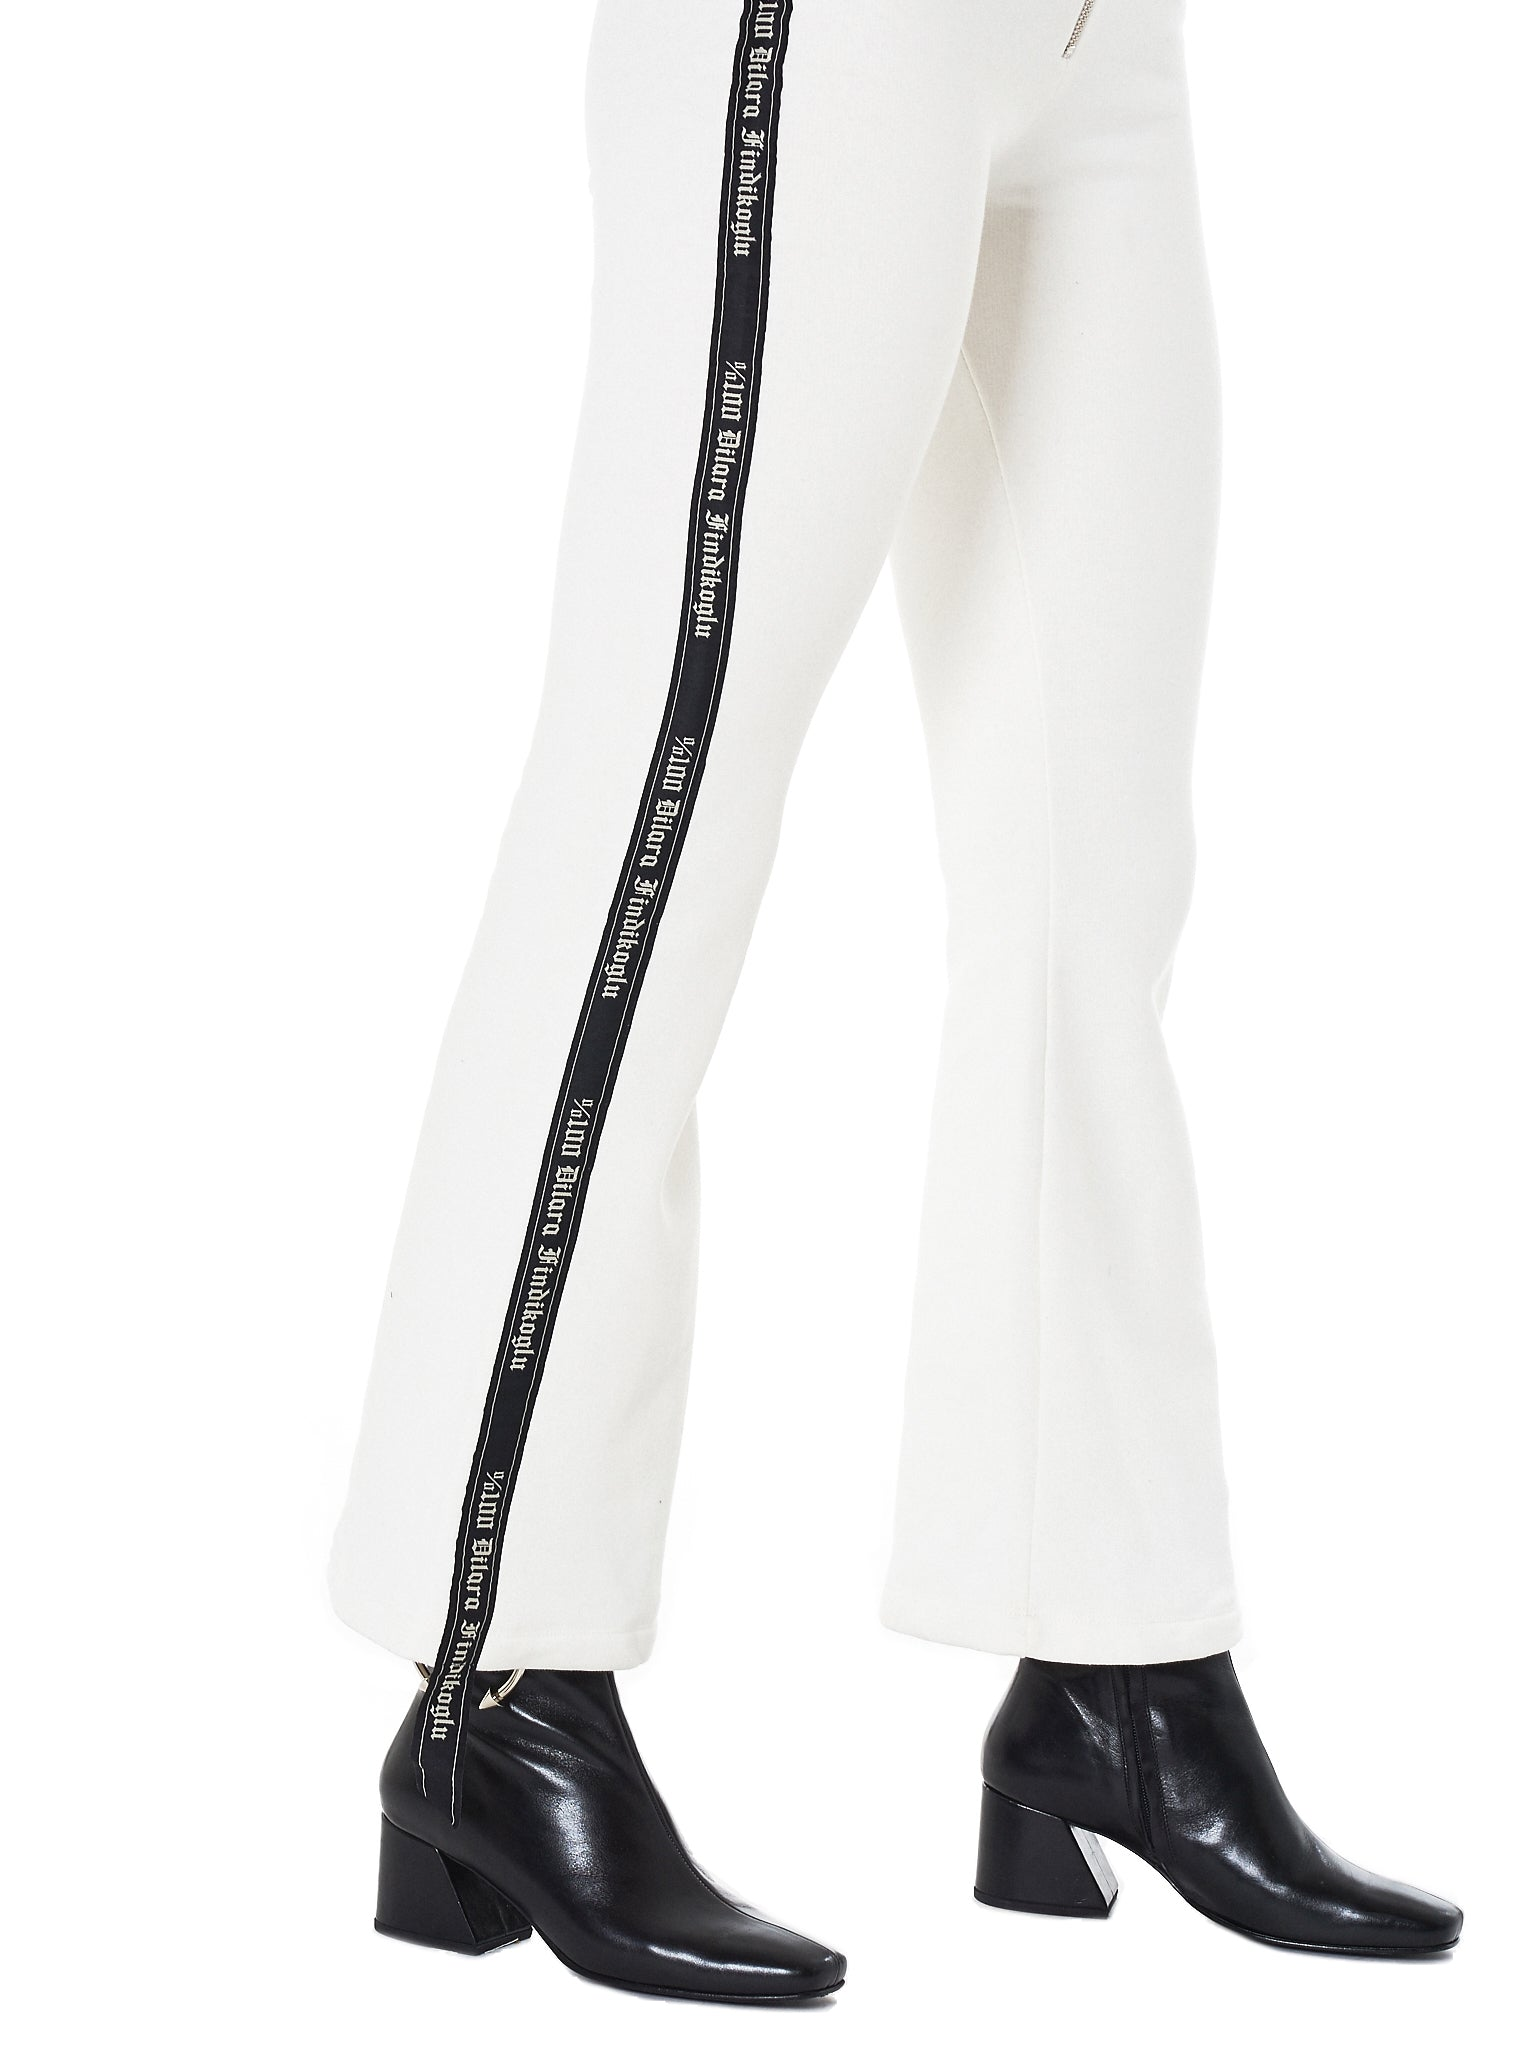 Dilara Findikoglu white flared trouser- Hlorenzo stripe detail